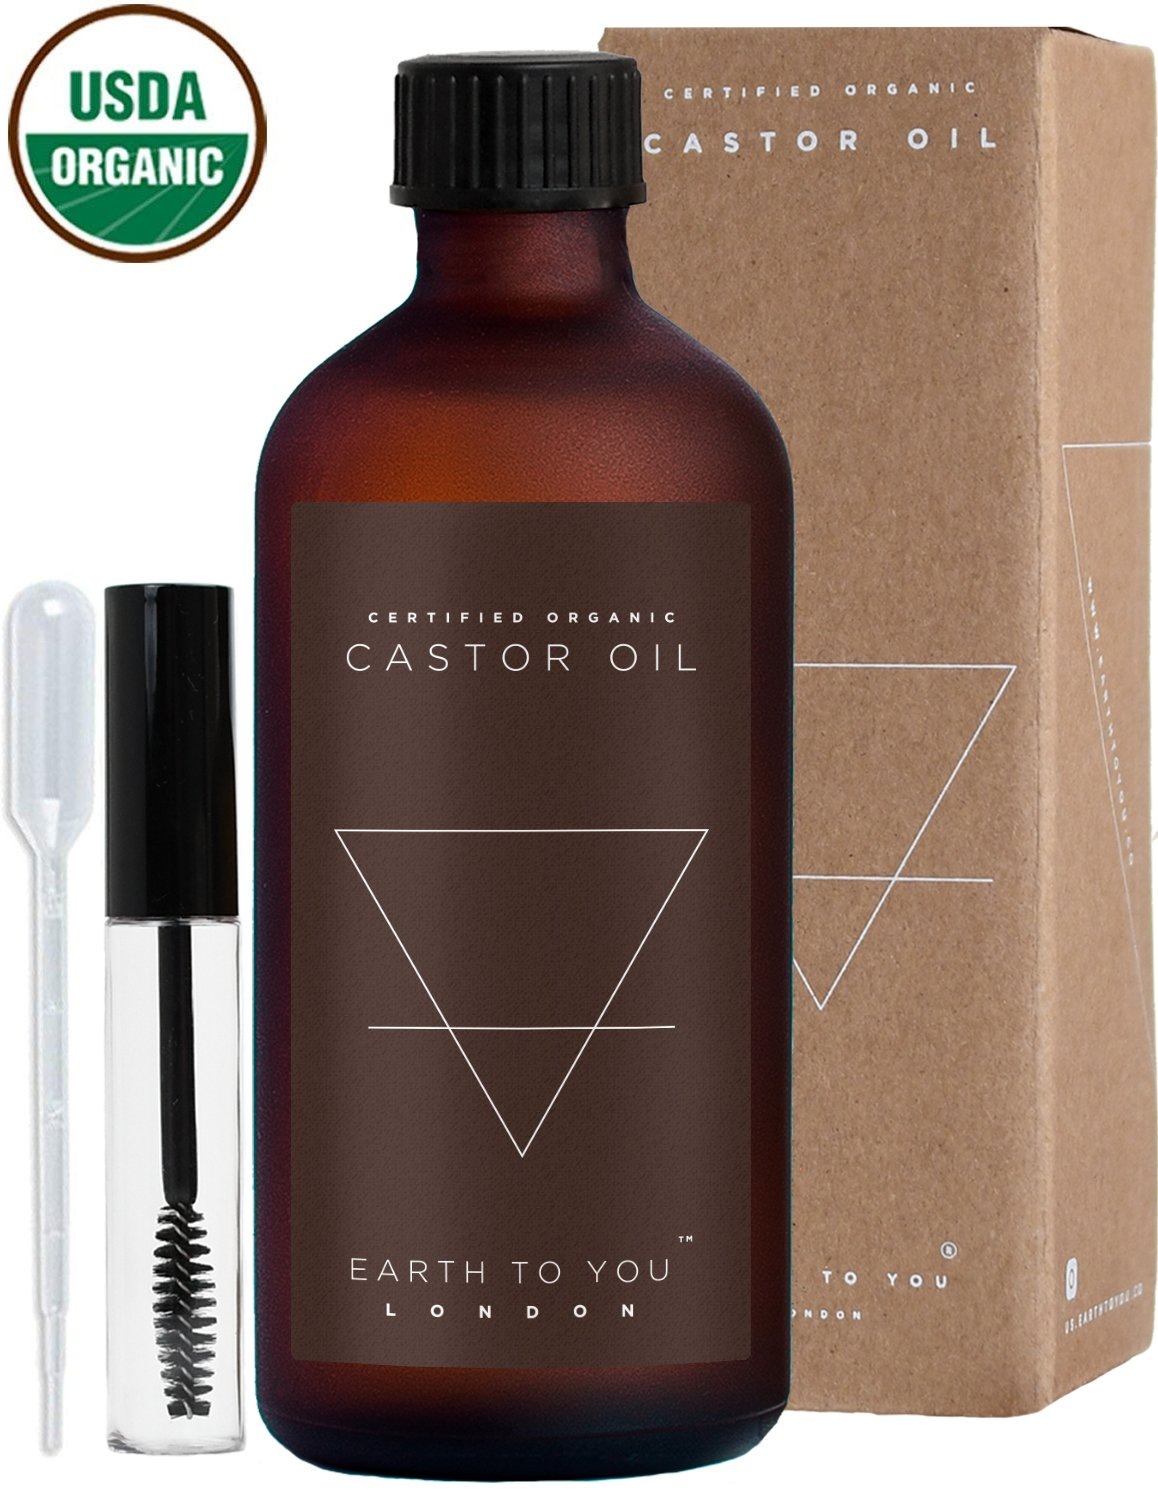 Castor Oil Organic USDA Certified, 100% Pure, Cold Pressed, Unrefined, Vegan, Treatment for Hair Growth, Eyelashes, Moisturizer for Face, Skin 100ml (3.5oz) & Hygienic Applicator Set by Earth To You by Earth To You